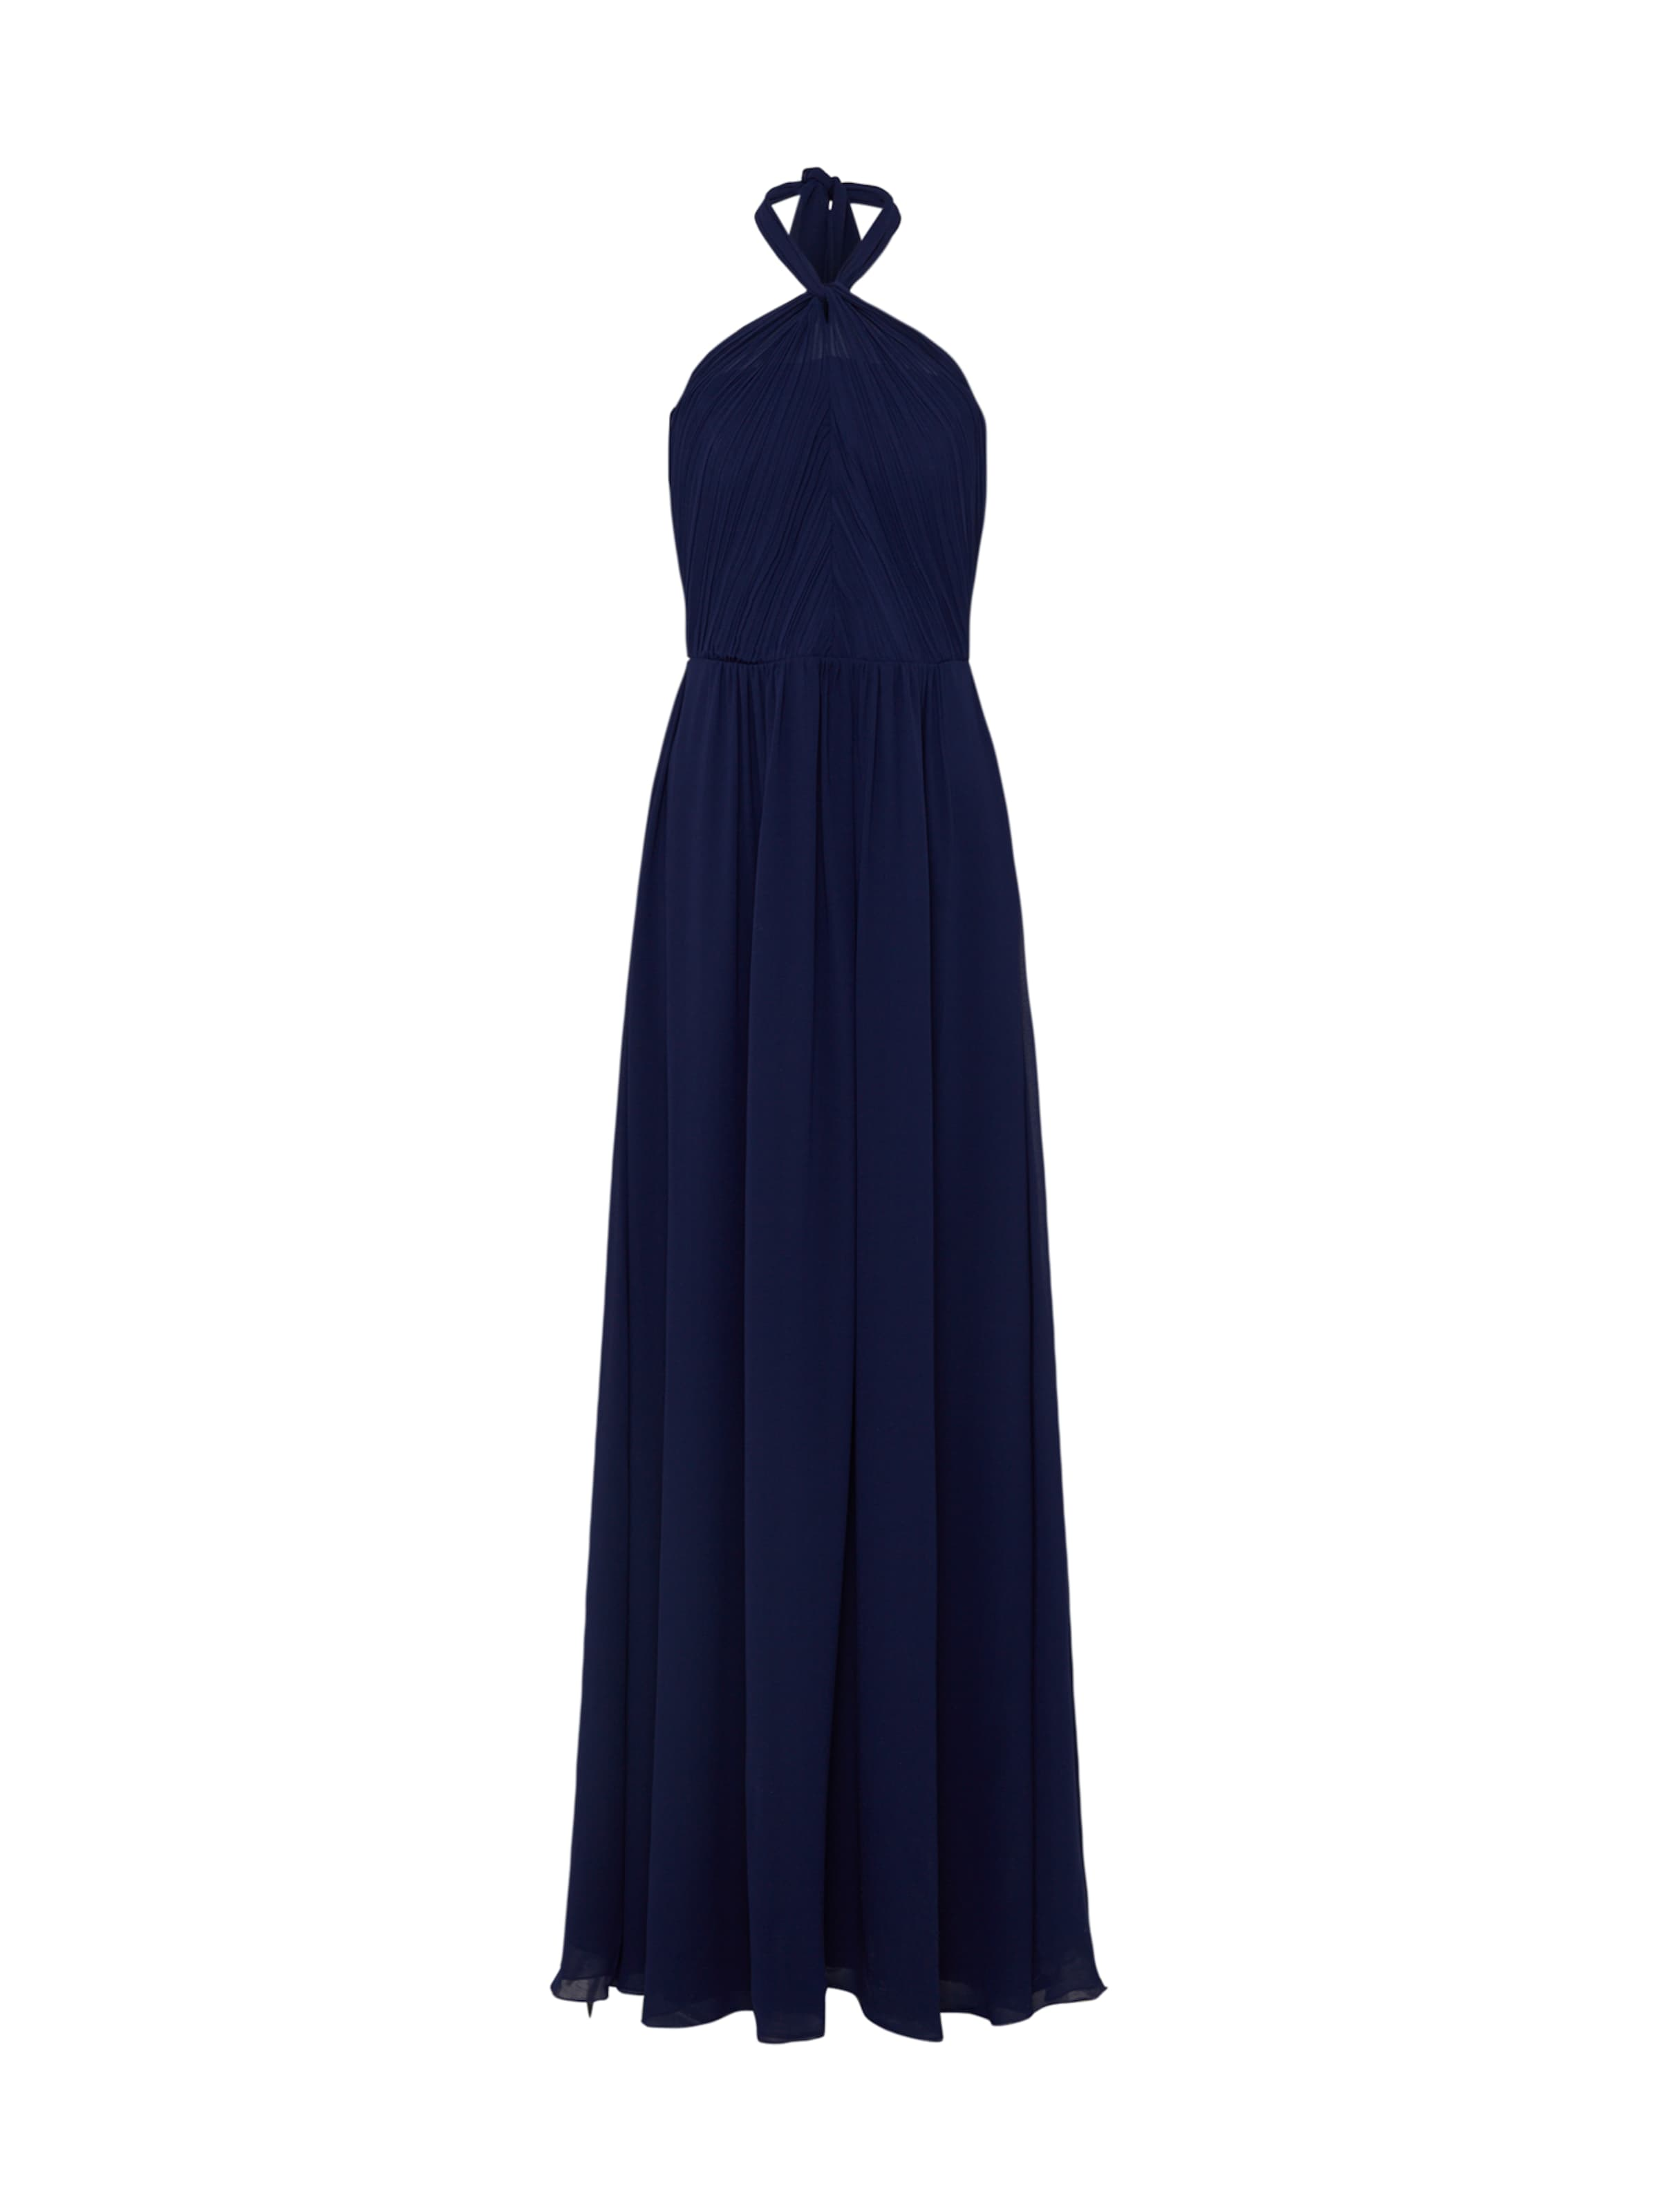 Suddenly In Princess Princess Suddenly Kleid Kleid Blau Suddenly Blau In Princess xrdoCBe